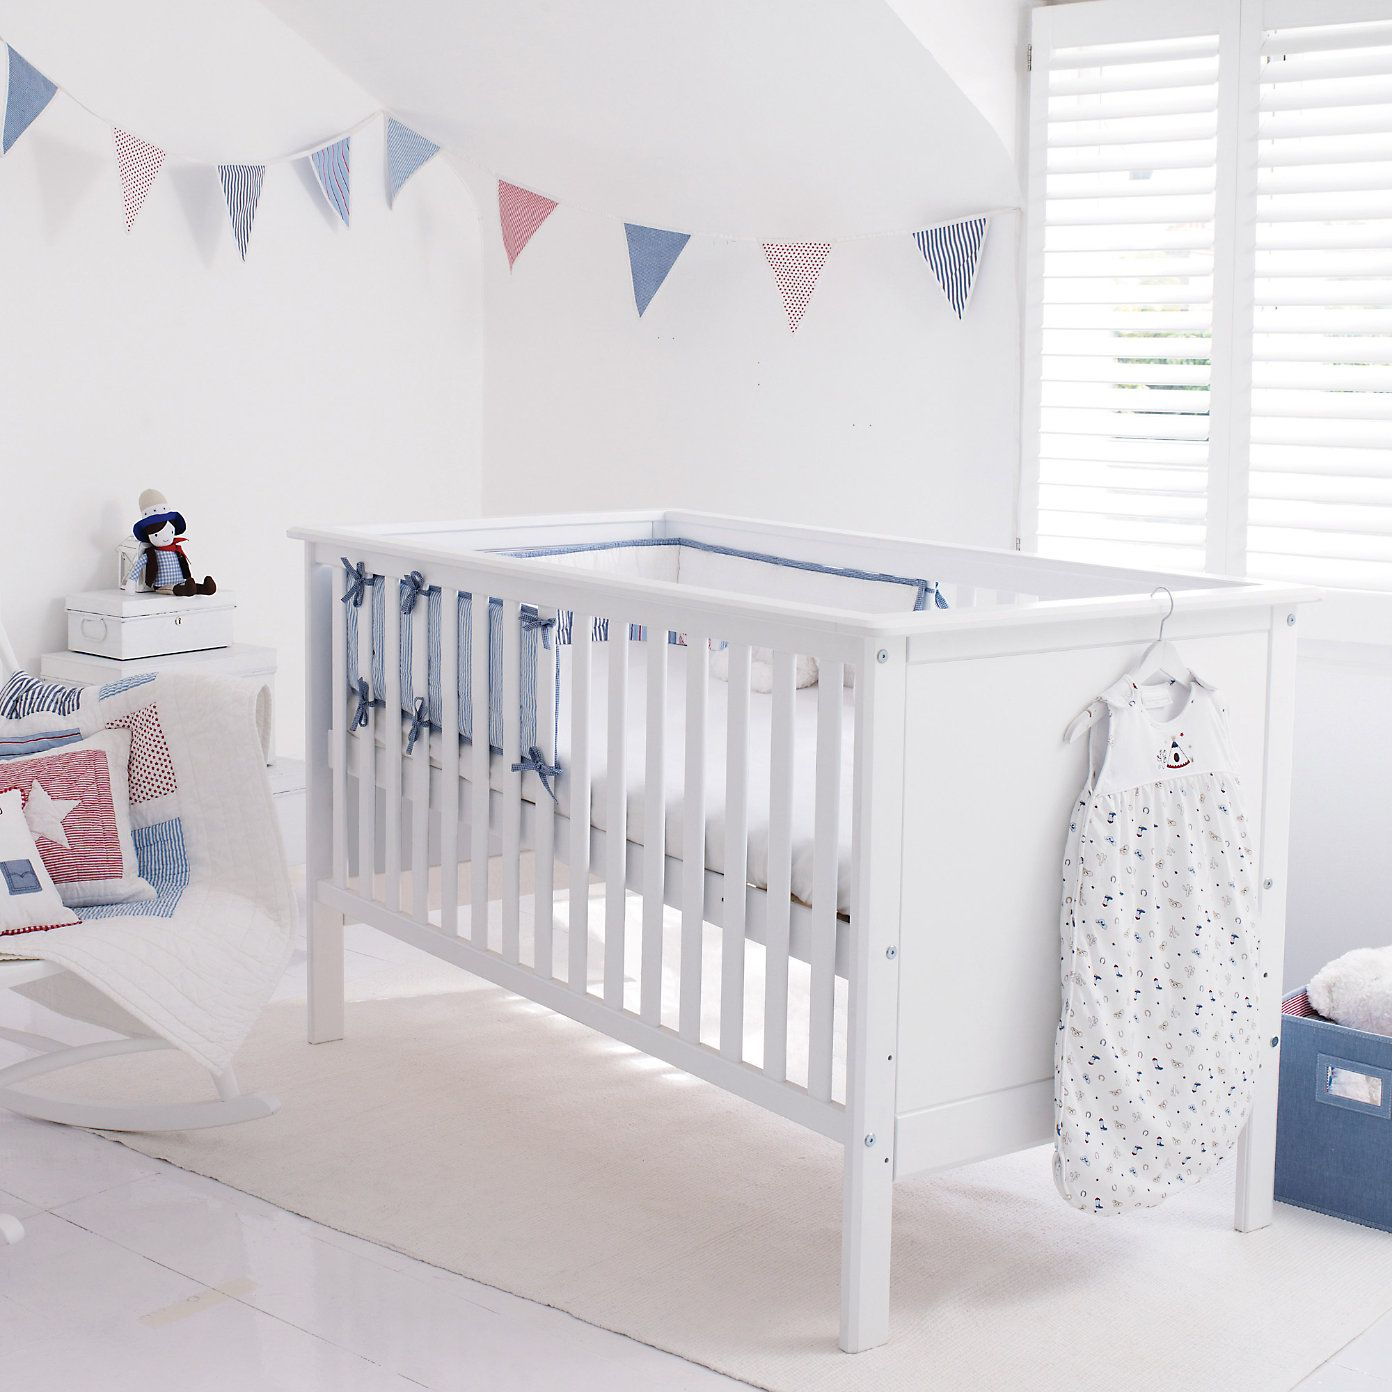 Pin By Vero Rodriguez On Nursery Inspiration Childrens Bedroom Furniture Childrens Furniture Childrens Bedrooms